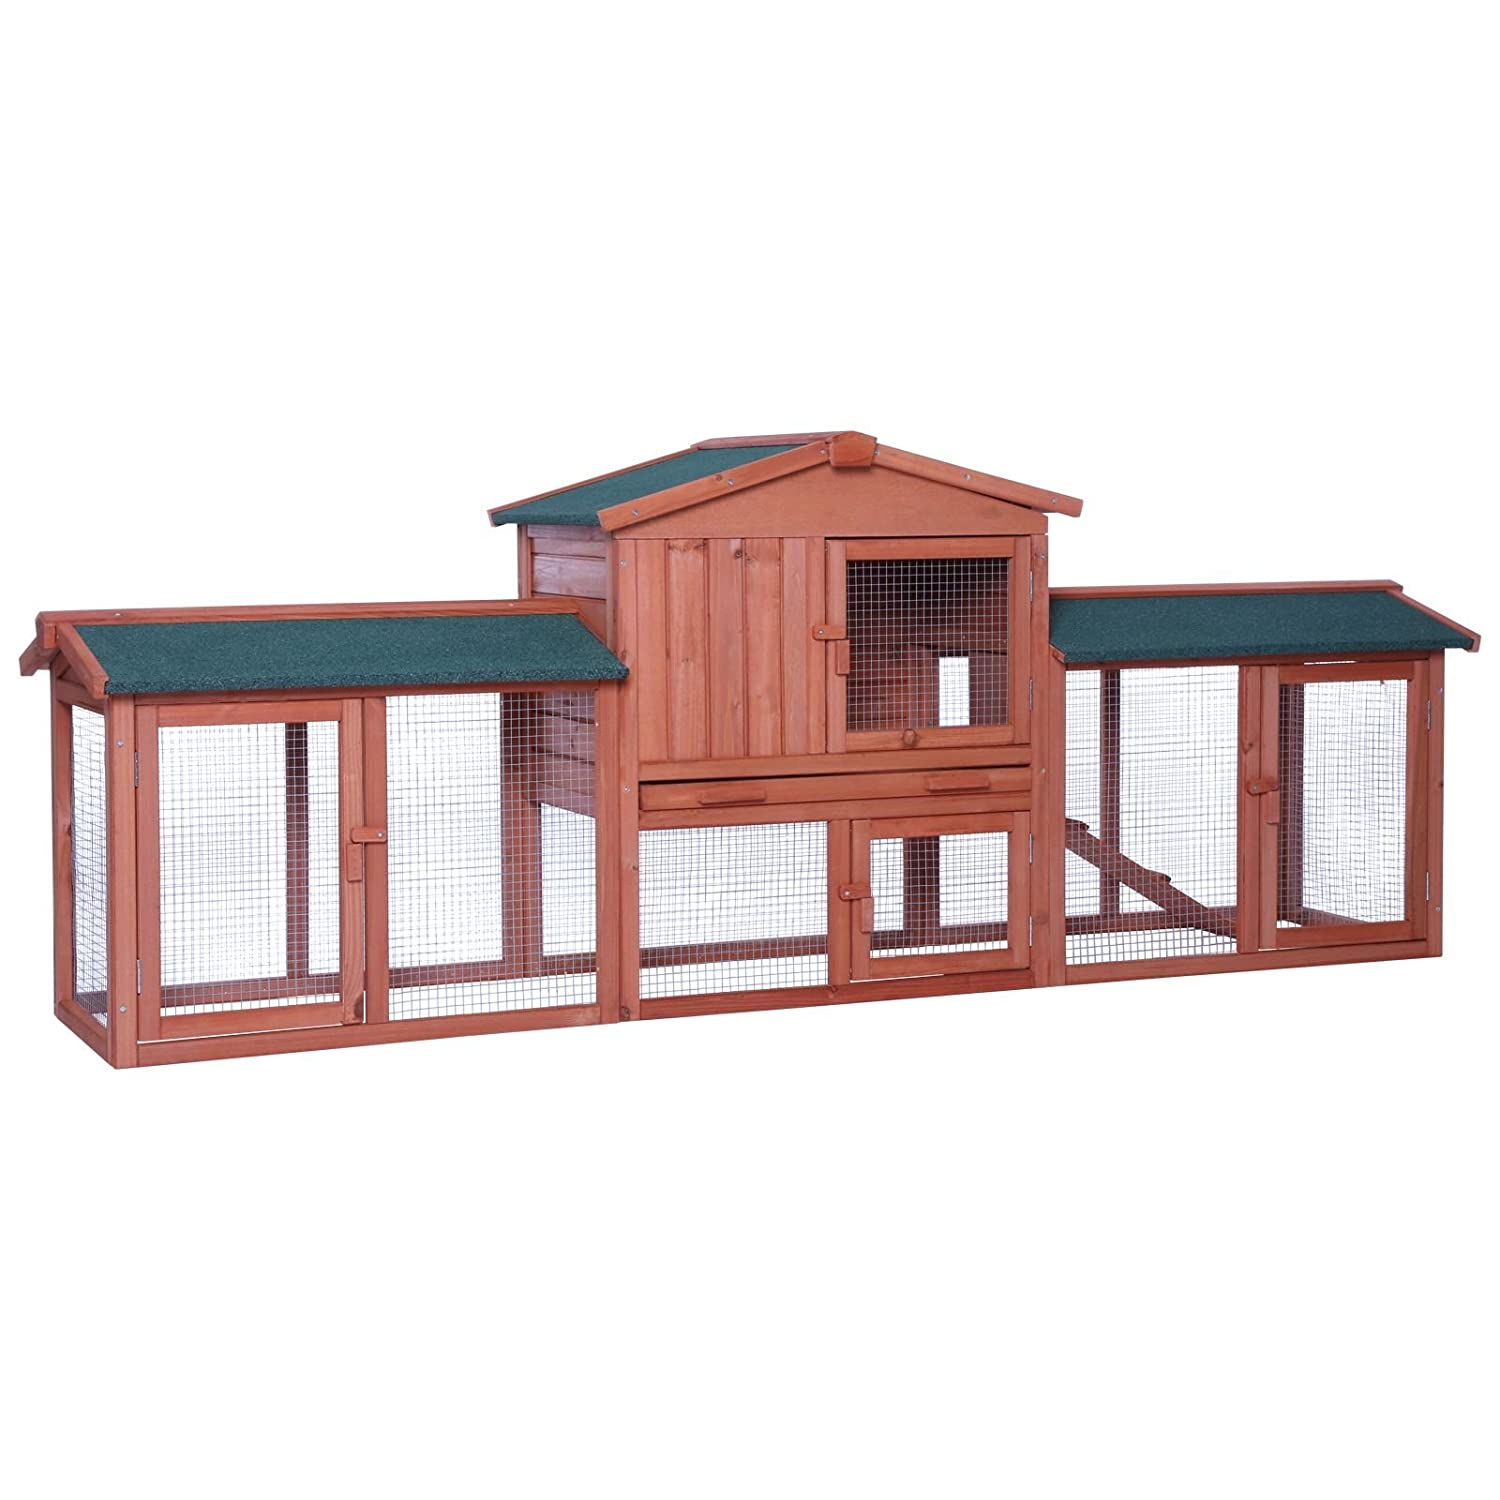 Dibea RH10241 XL Rabbit Hutch 223 x 52 x 85 cm (W x D x H, Brown, Premium Double Hutch for Rabbits, Guinea Pigs Dwarf Rabbits, Weatherproof, Roof